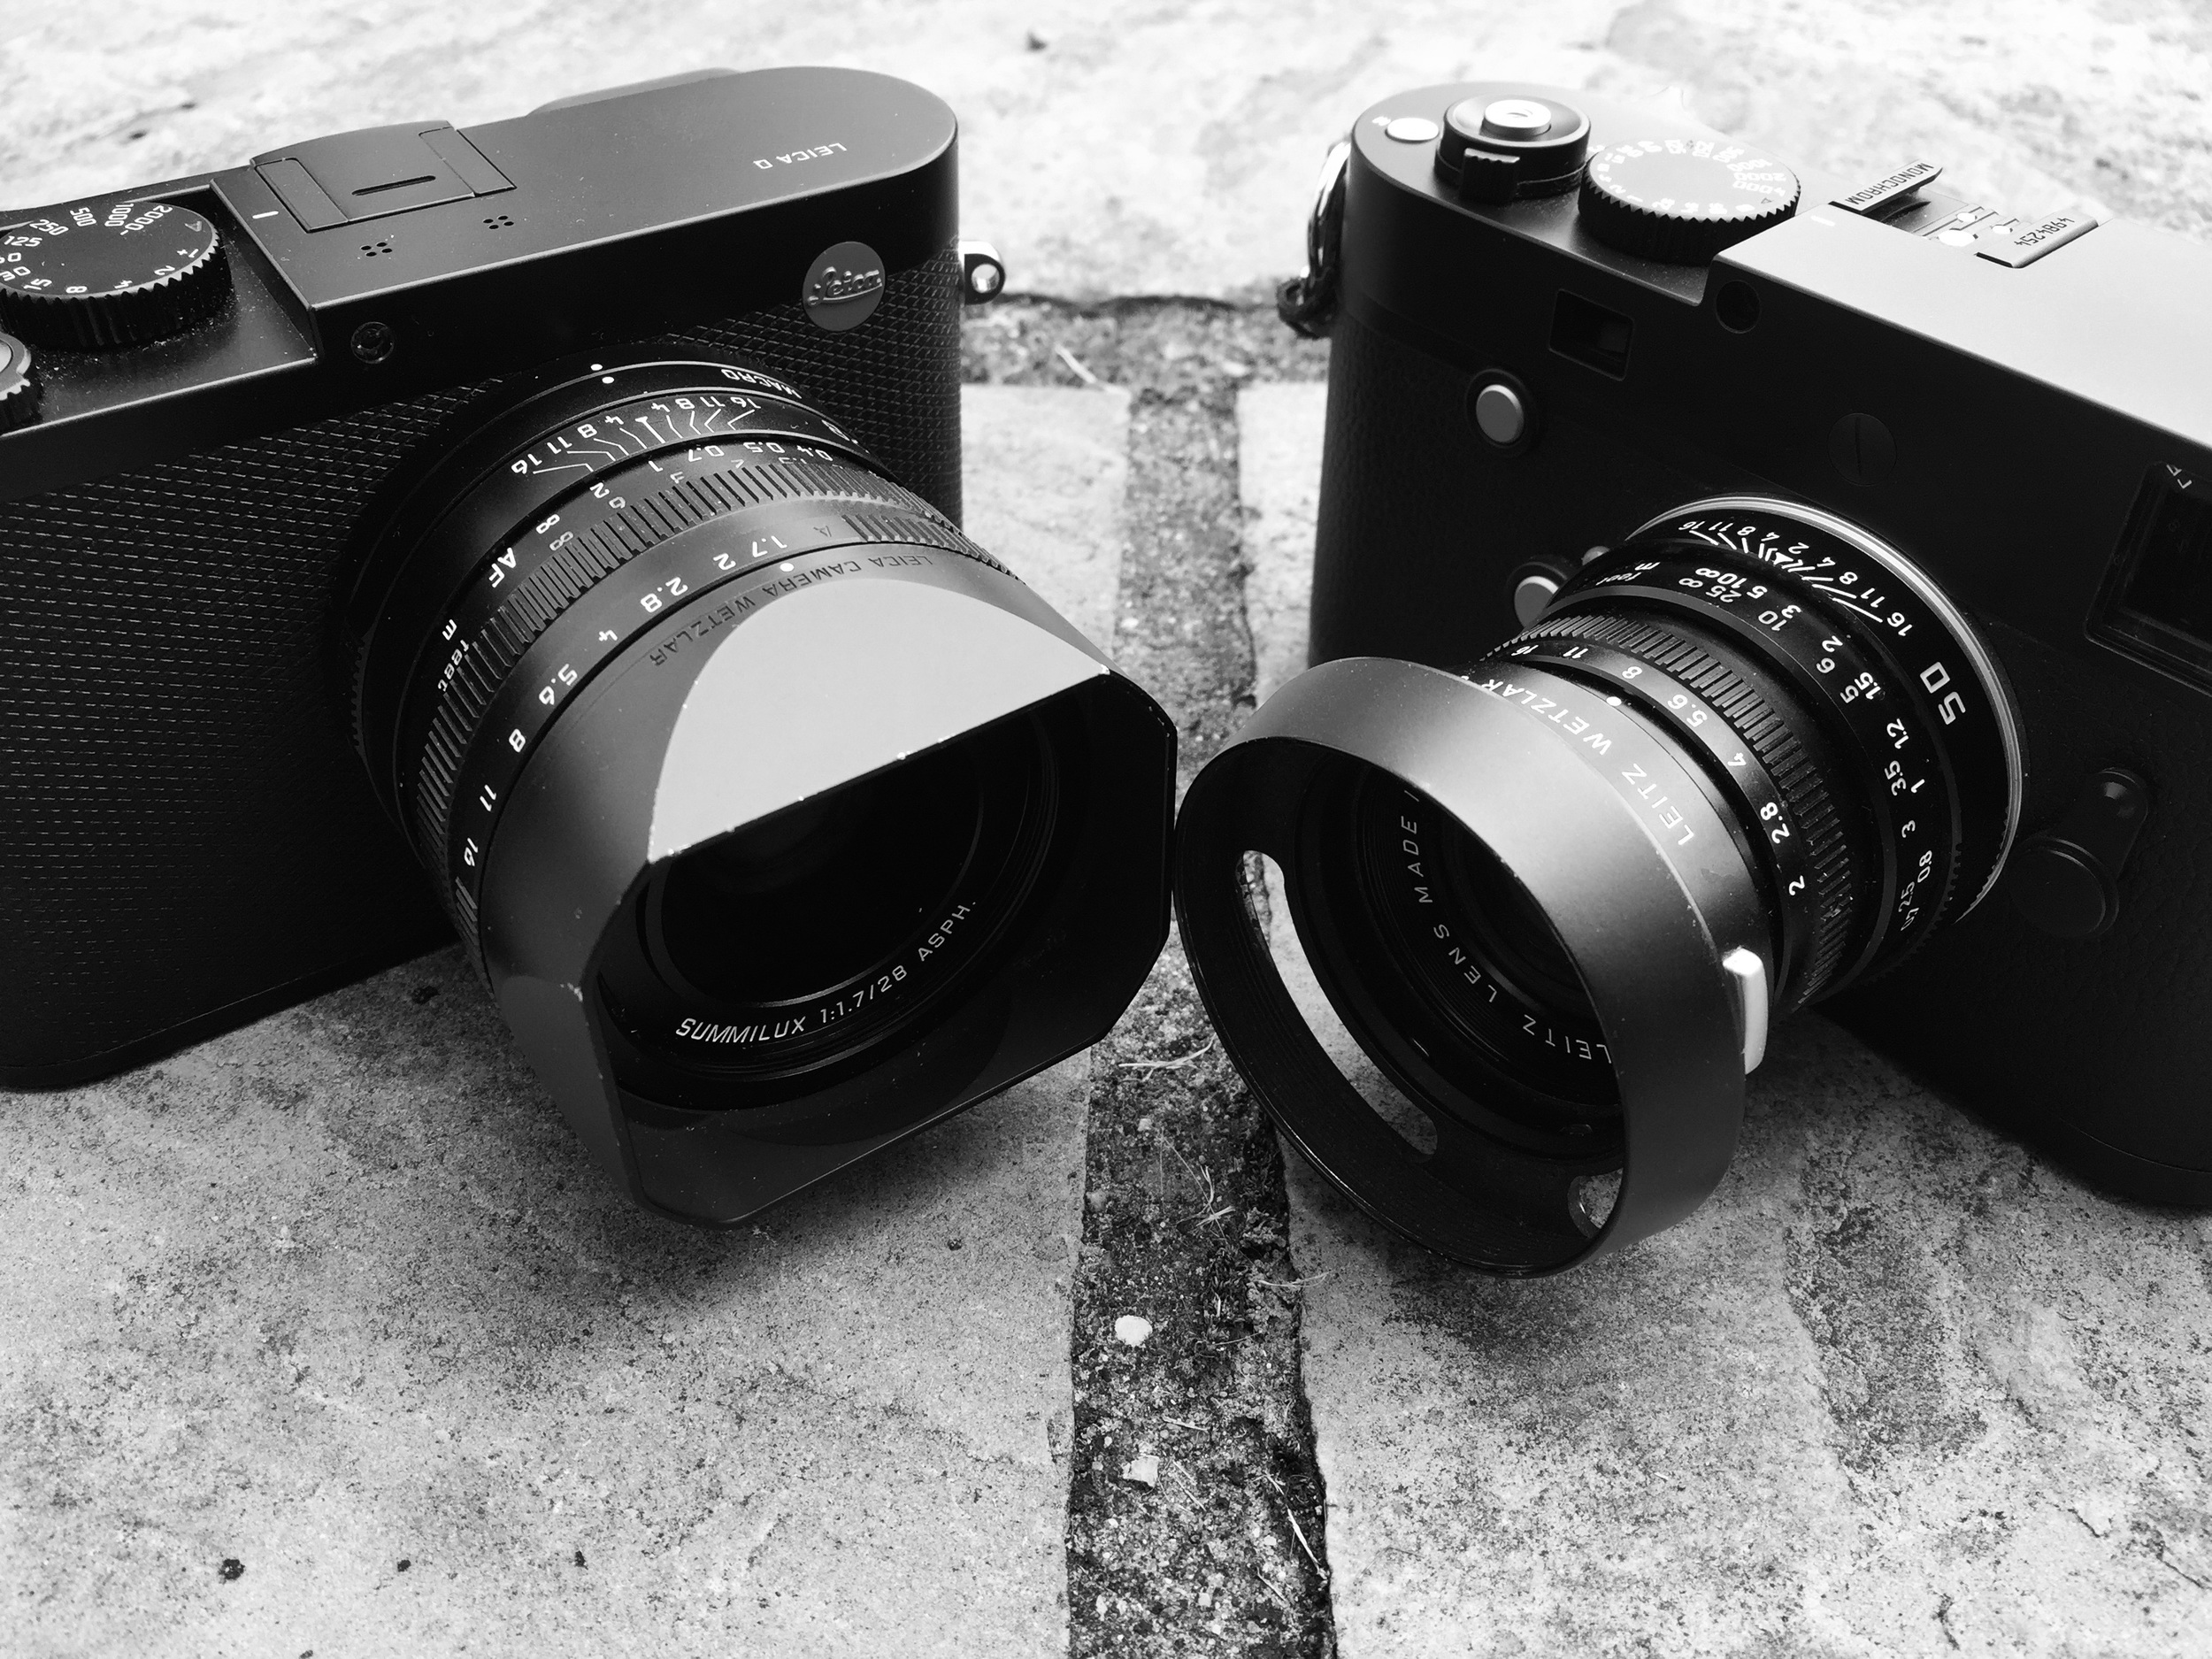 The contestants - the Leica Q with the 28mm lens vs the Leica Monochrom with a 50mm Summicron. I don't own a 28mm lens to put on the Monochrom, so I cropped the Q files to give the same field of view.